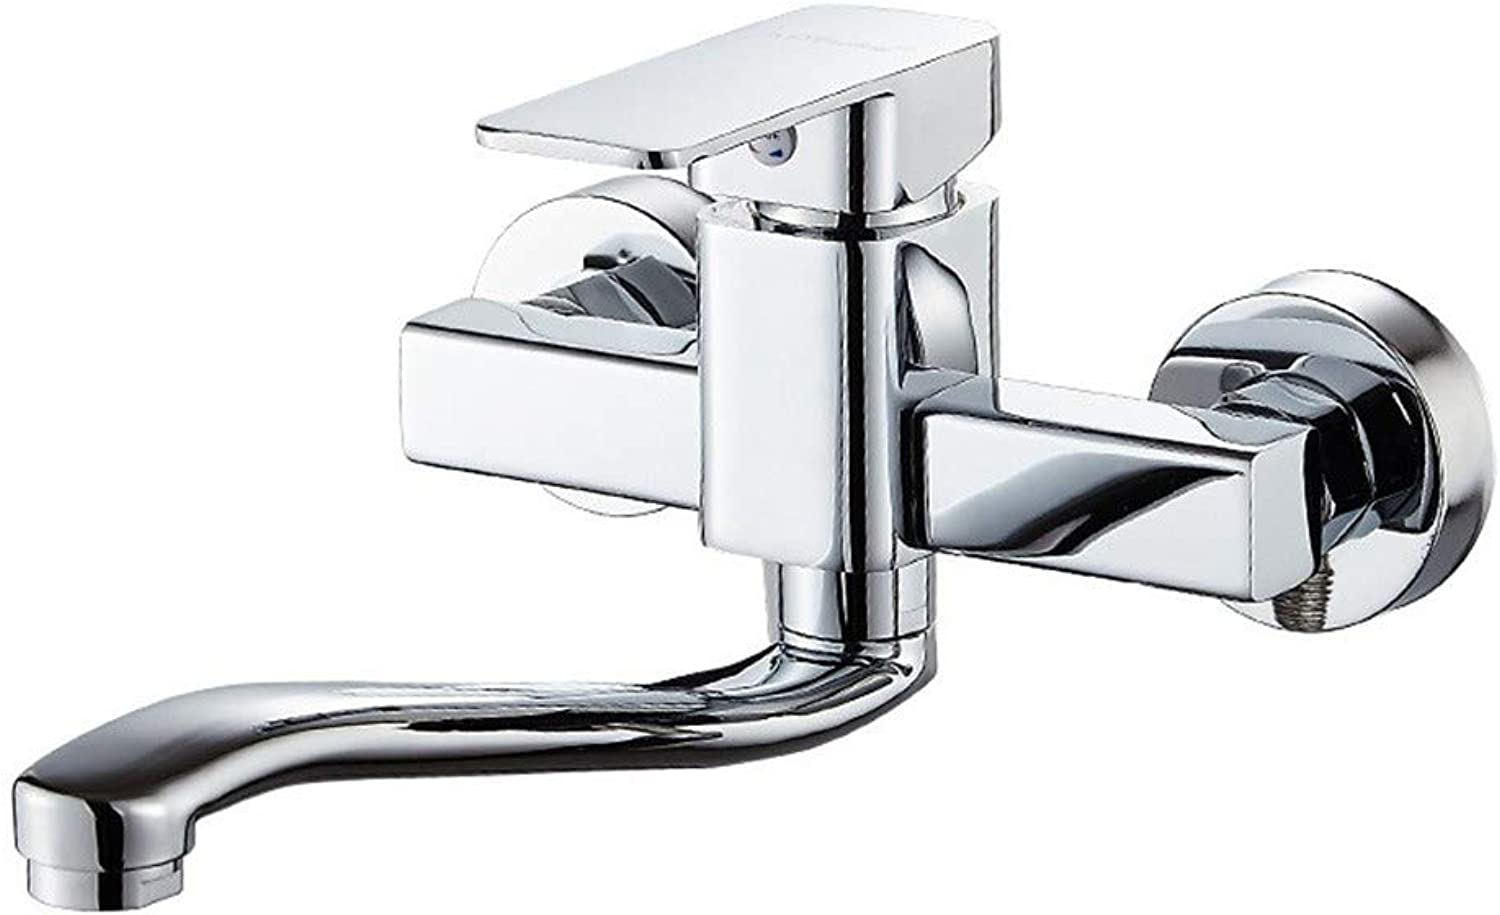 Zhcmy?Faucet Single Handle Copper Hot And Cold Faucet Kitchen???Laundry Pool Sink Faucet redation